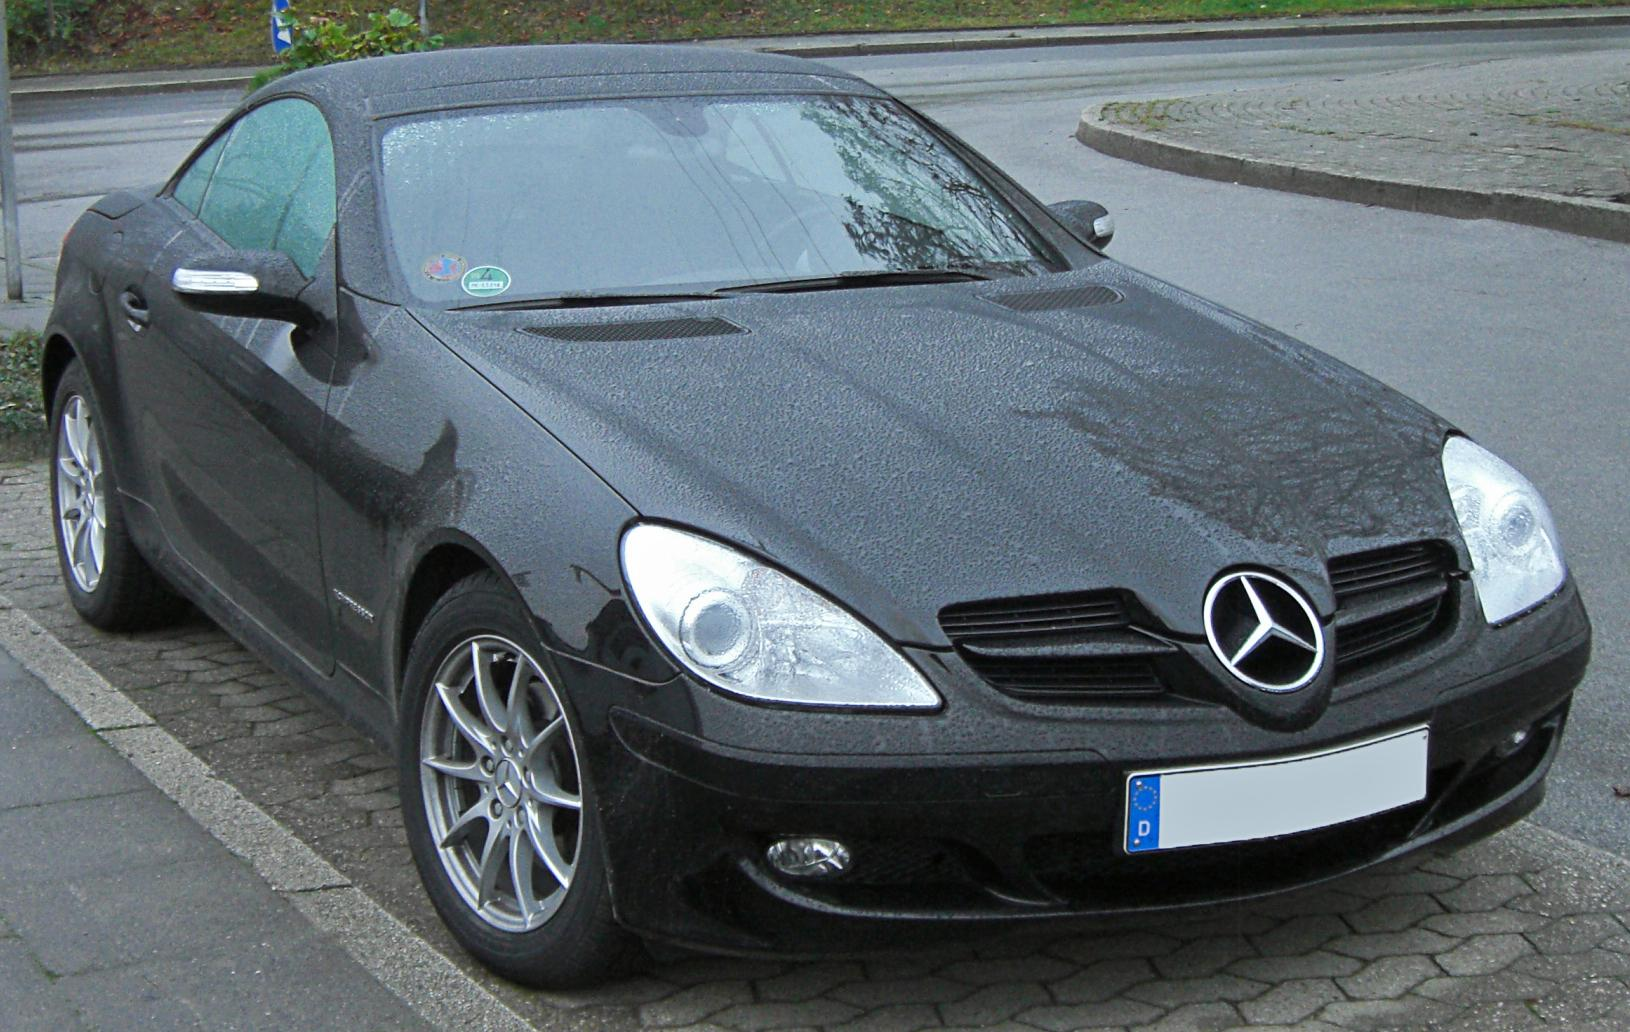 File Mercedes Slk 200 K Front 20091209 Jpg Wikimedia Commons